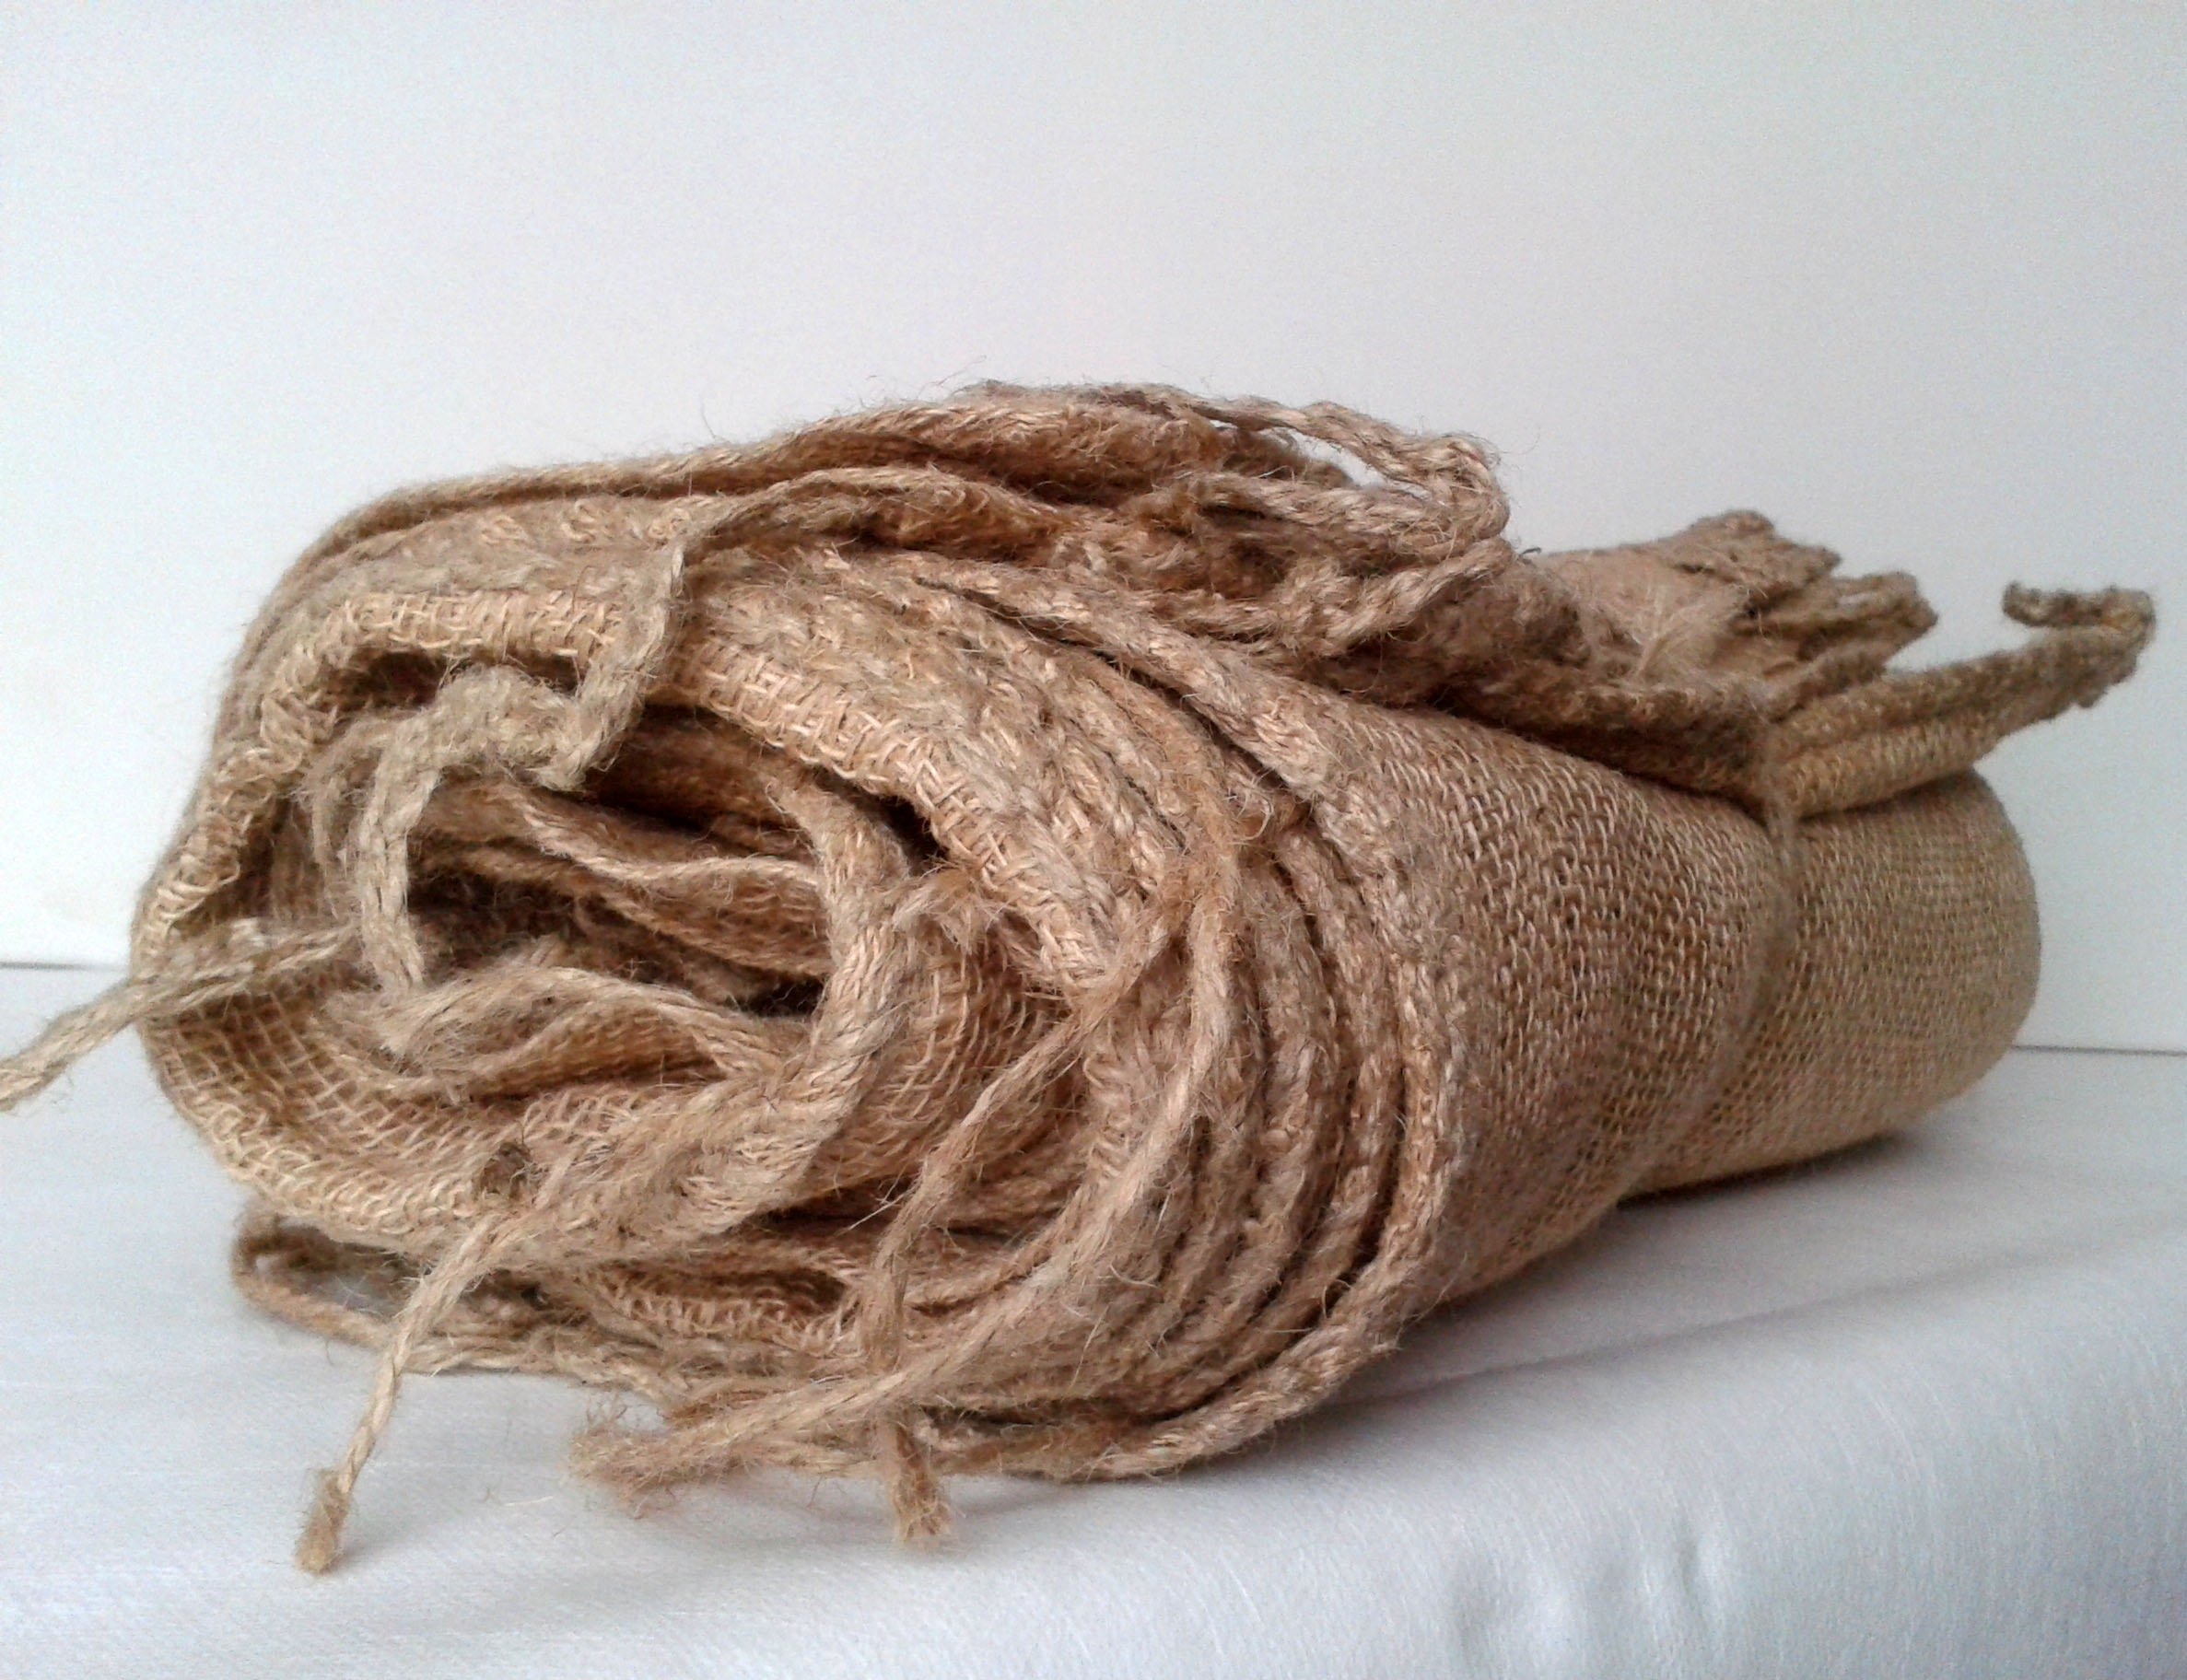 10 Hessian Sand Bags - Unfilled